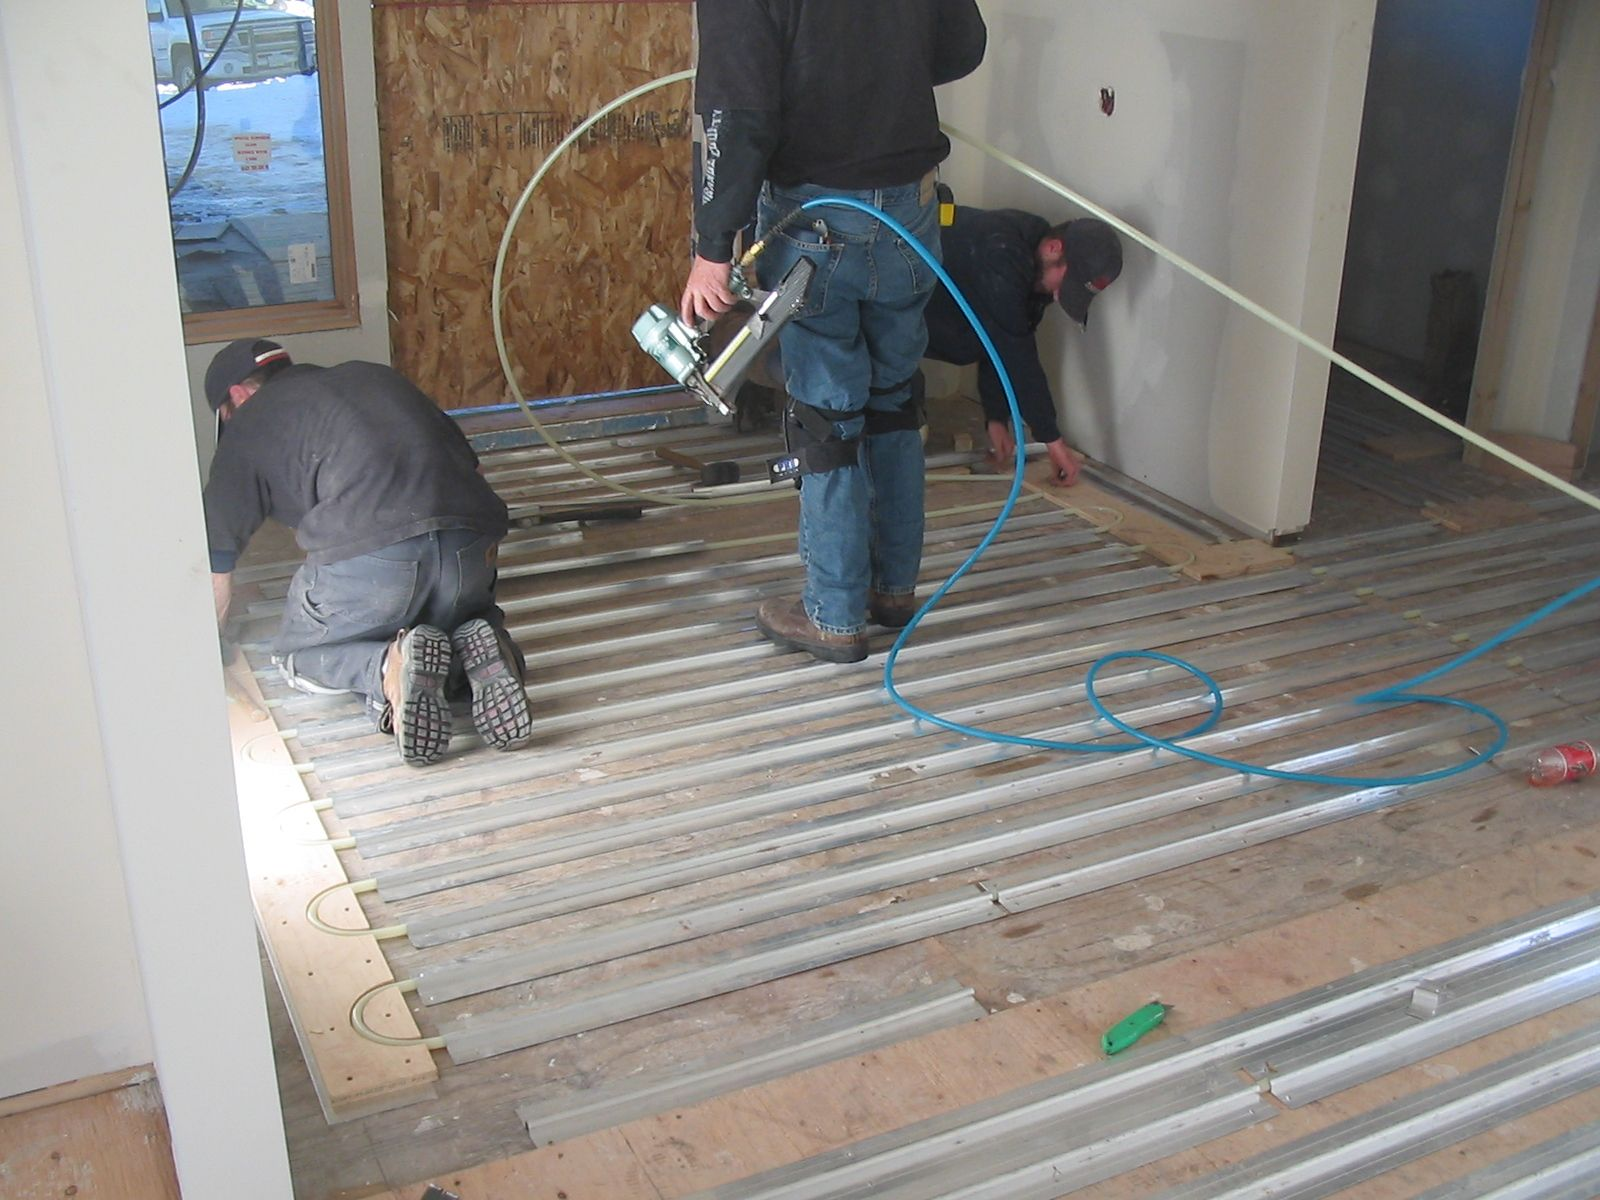 Radiant Floor Heating Systems By Radiant Engineering Inc If You Are  Building New Or Remodeling, Talk To Your Contractor About Patented, Made In  USA ...